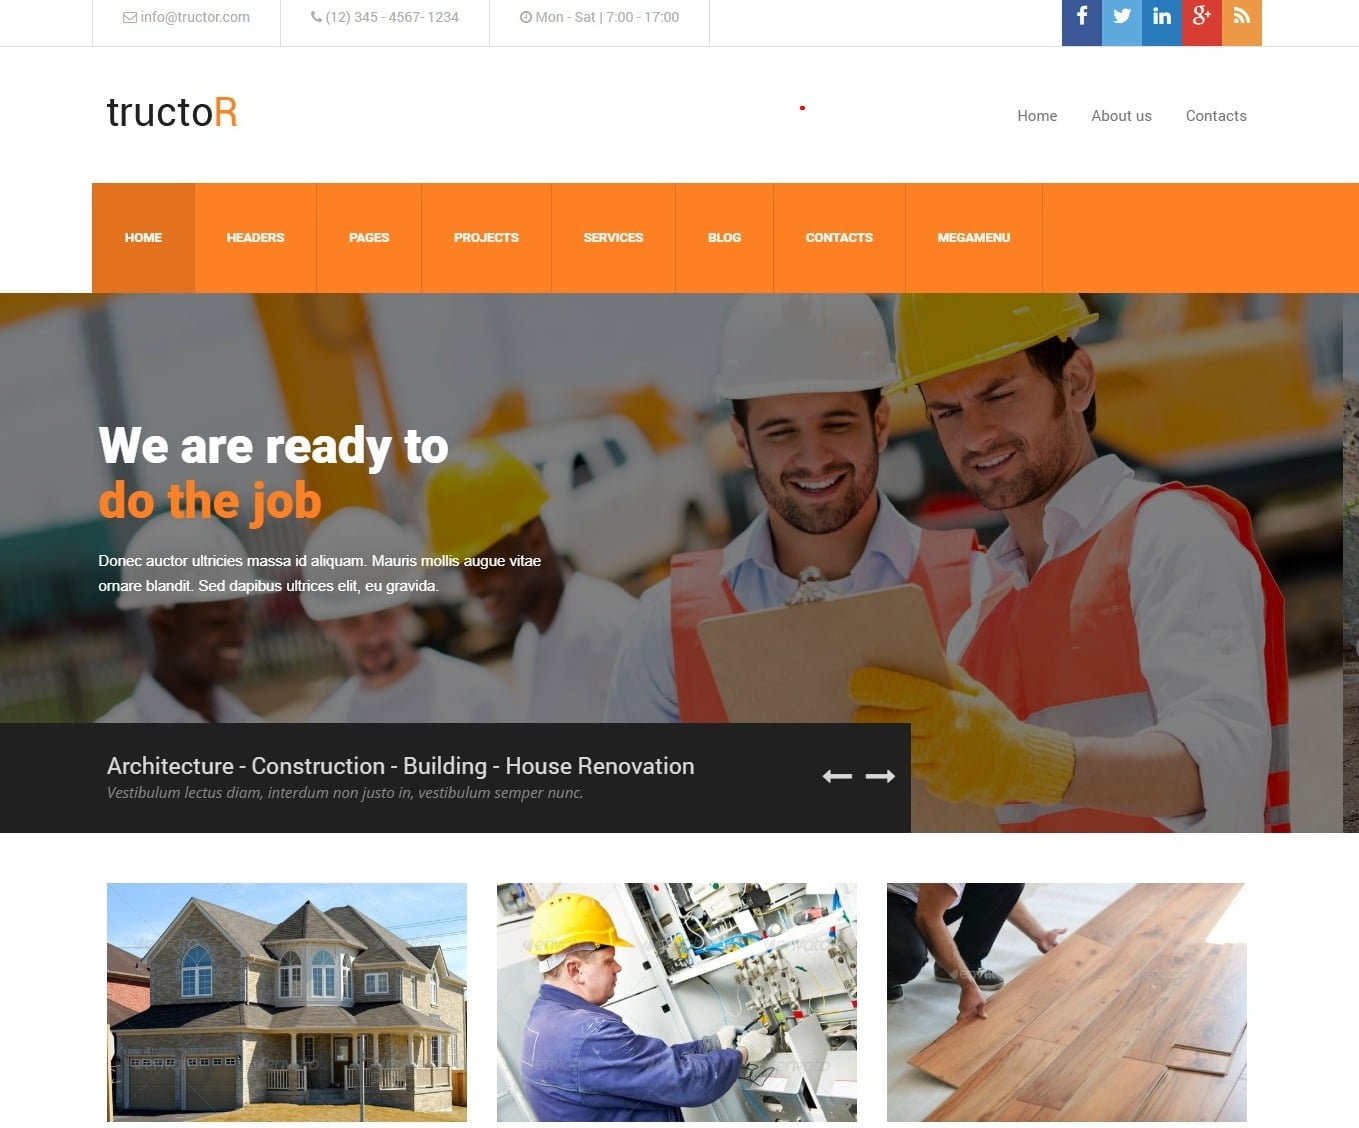 tructor-construction-website-template